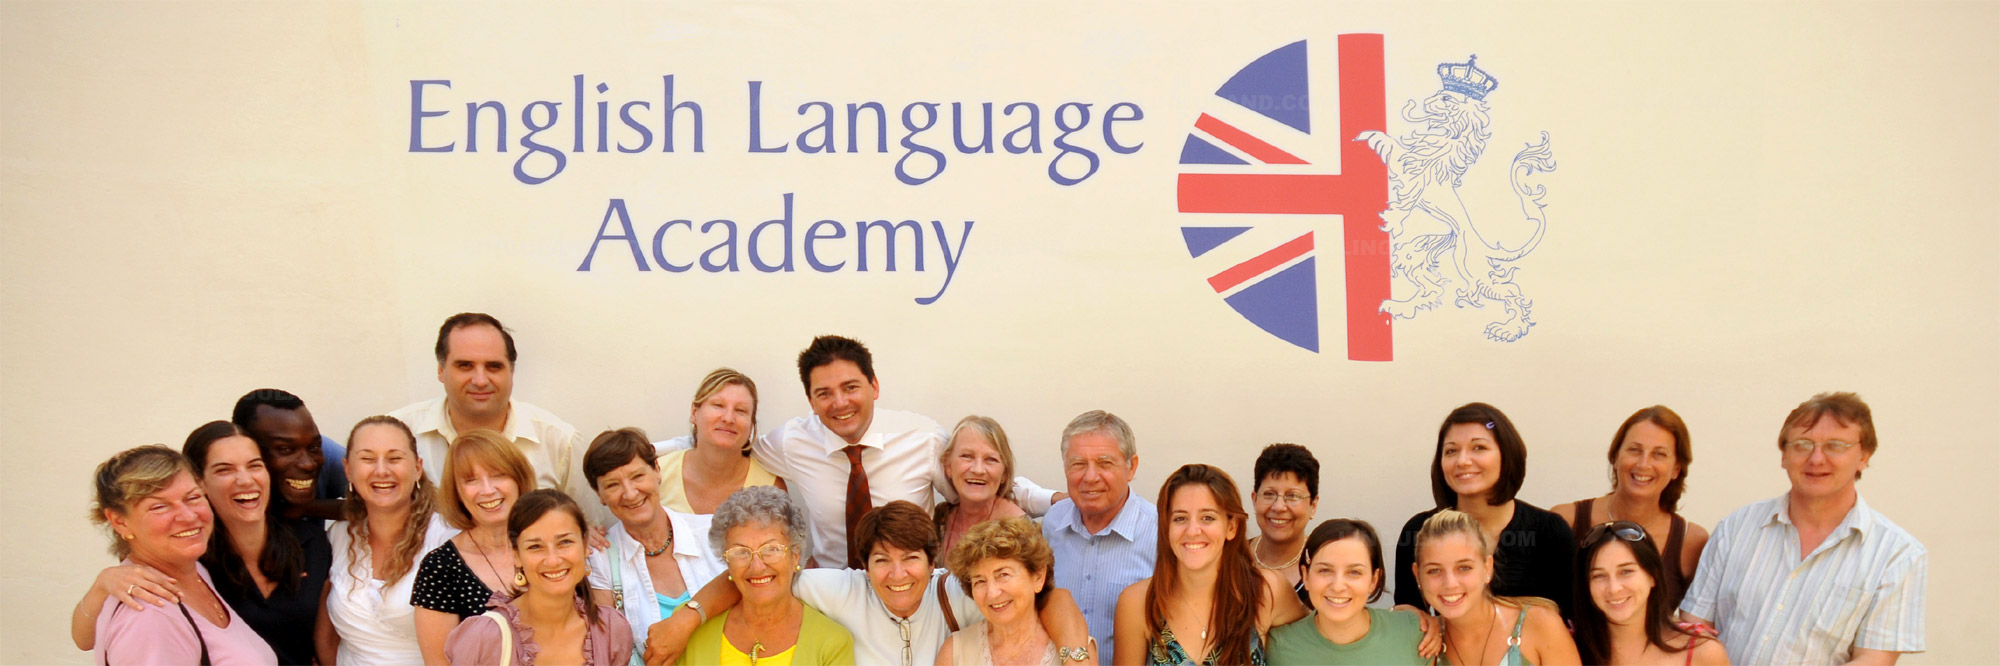 Los alojamientos de English Language Academy